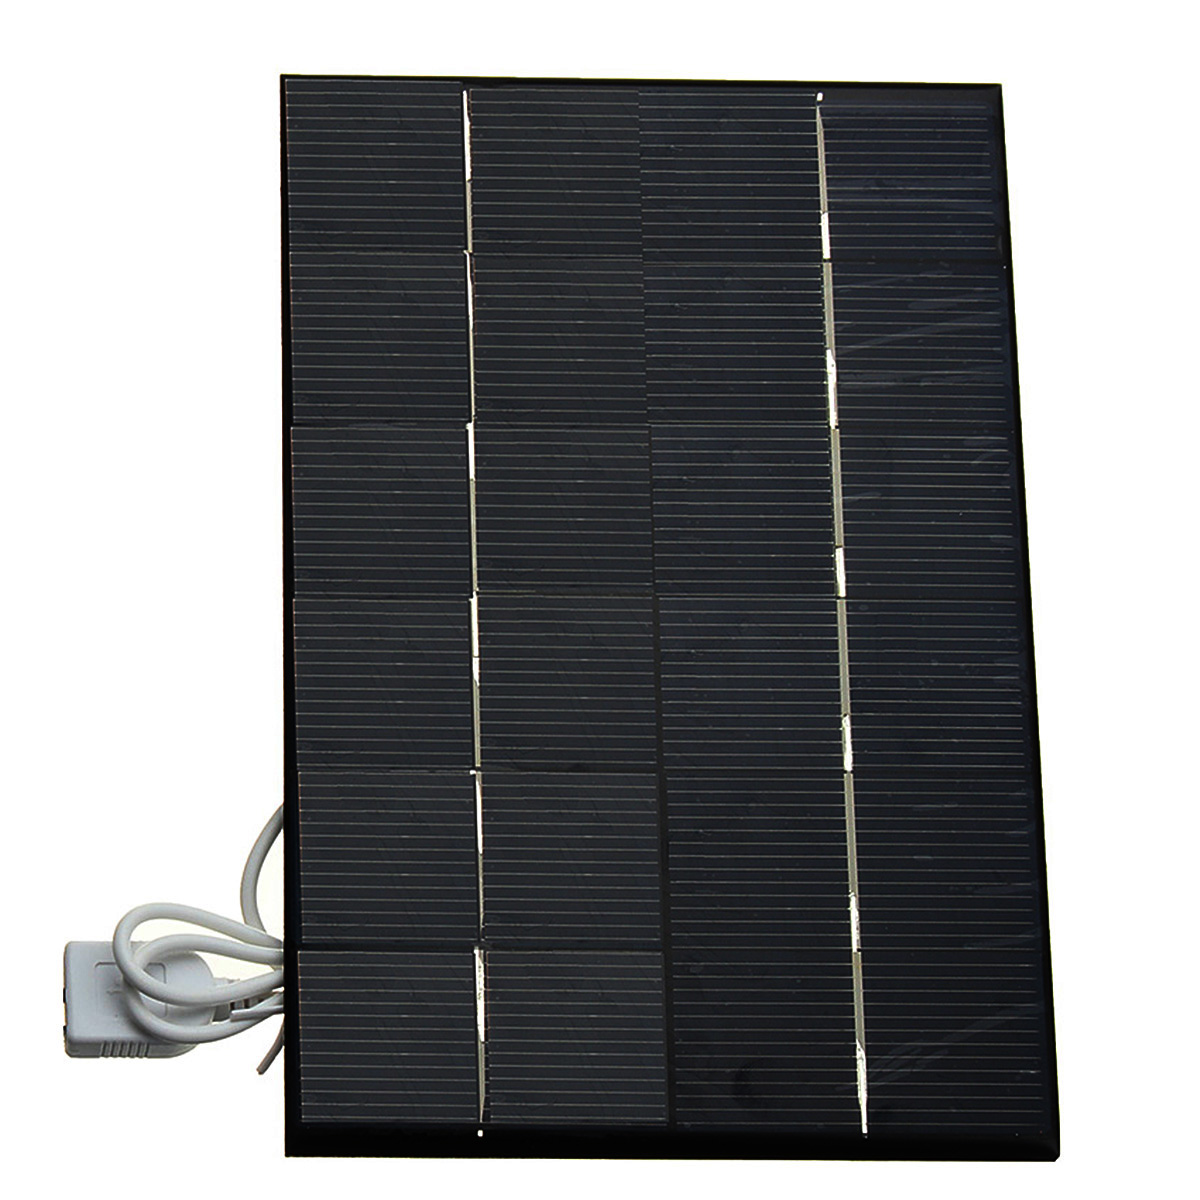 6V 3w 5w Polysilicon Solar Charger DIY Outdoor Solar Power Bank Camping Outdoor Tools Battery Charger For Smart Phone MP3 MP4